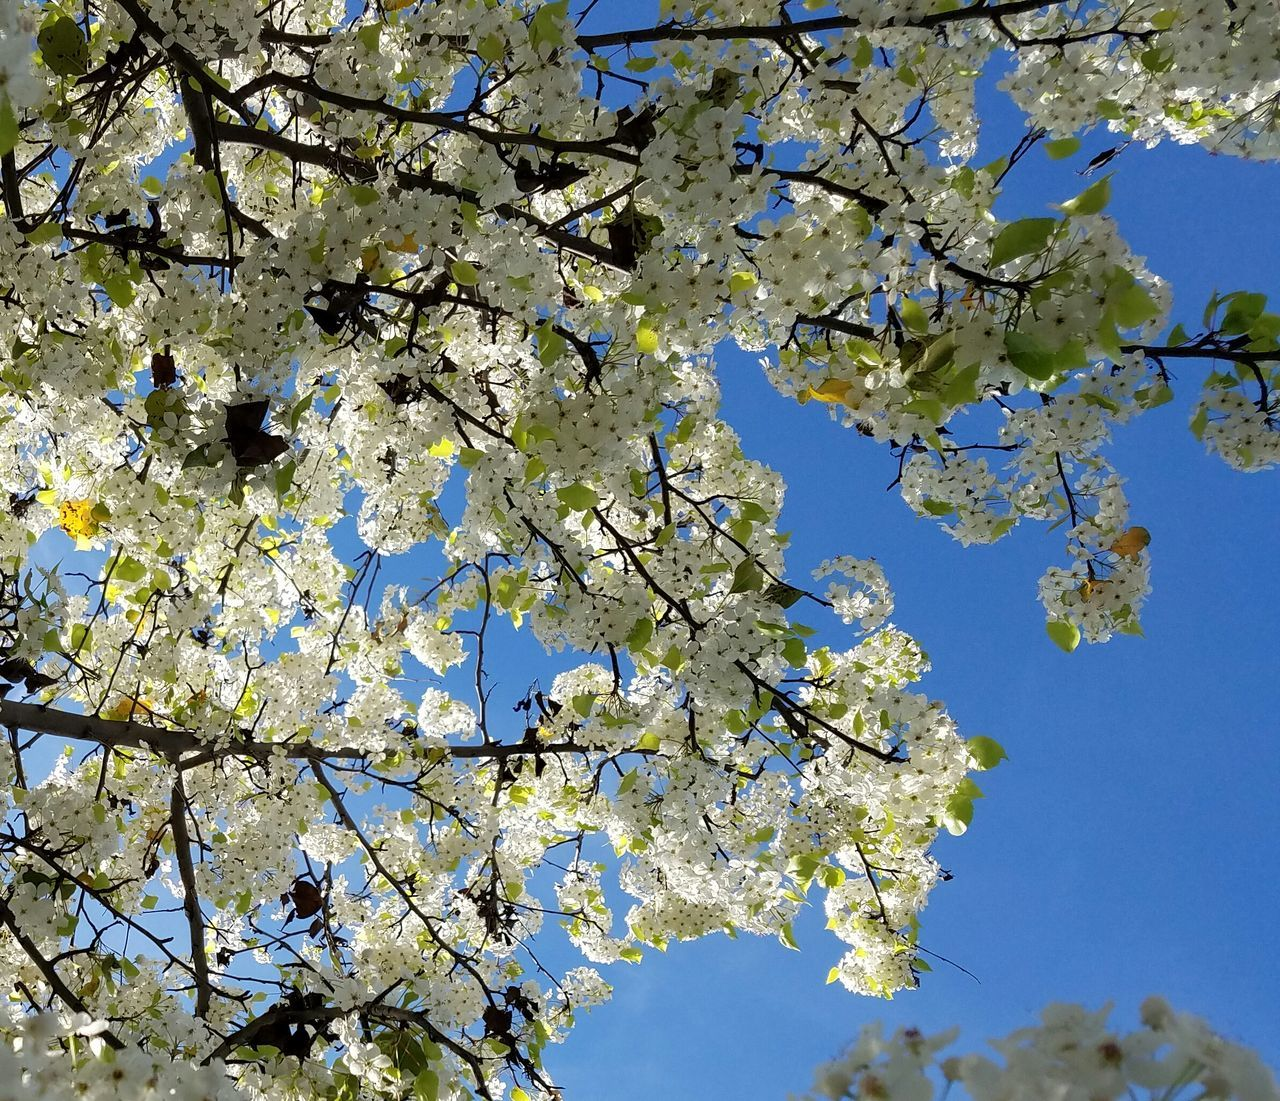 Natural Light No Edit Apple Blossoms Simple Elegance Copy Space EyeEm Best Shots Simplicity Fine Art Photography Meditation Fragility Flower Sky Low Angle View Blue Nature Beauty In Nature Clear Sky Springtime Pattern Summer Outdoors Freshness Tree Simple Light And Shadow